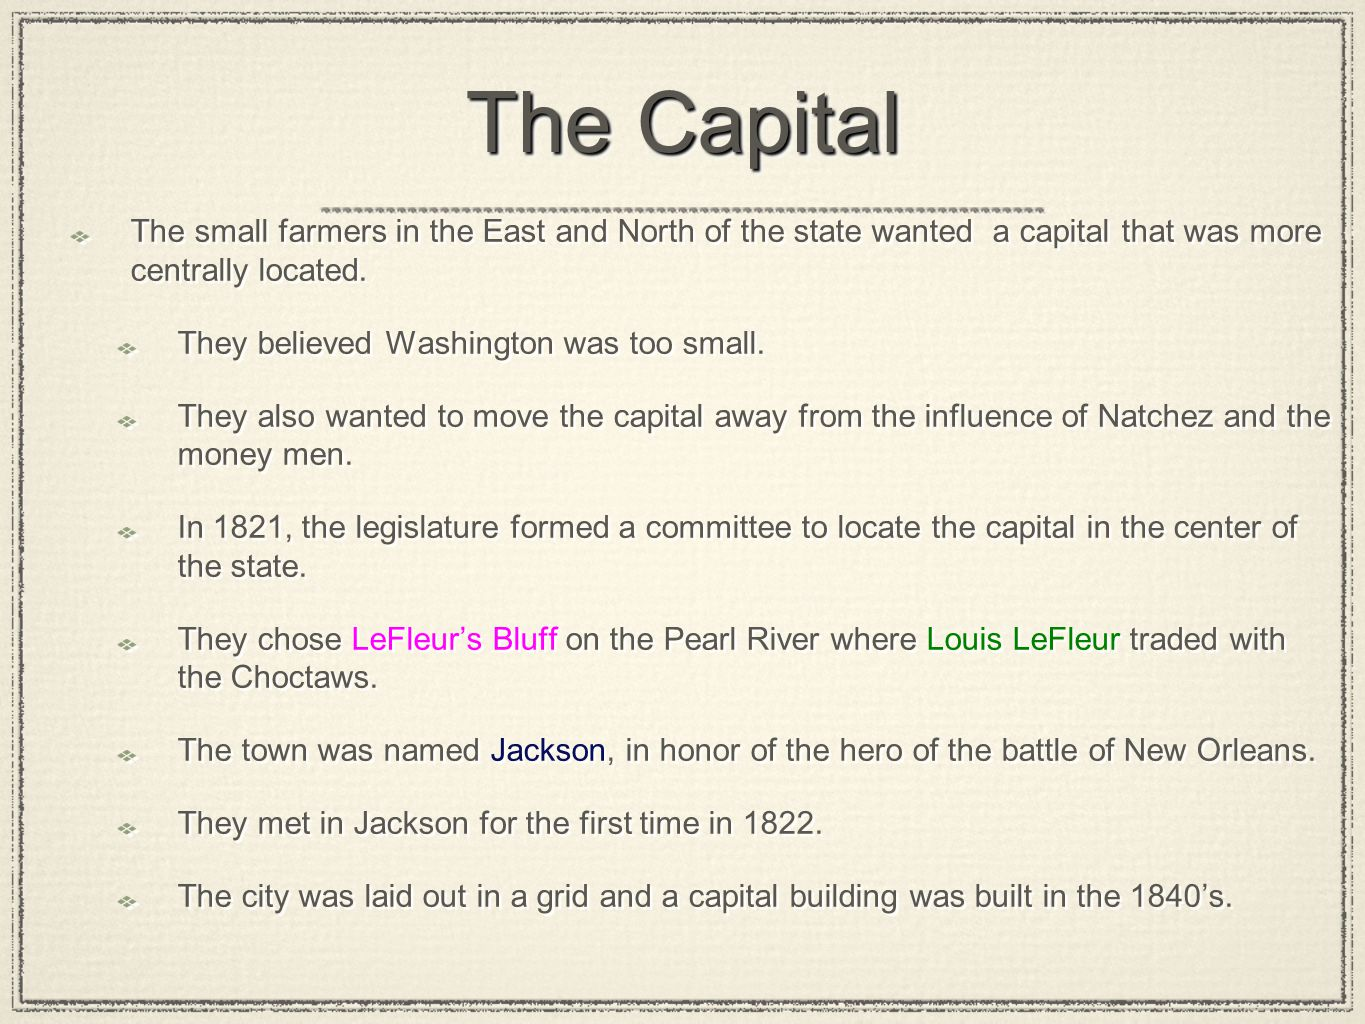 The Capital The small farmers in the East and North of the state wanted a capital that was more centrally located.